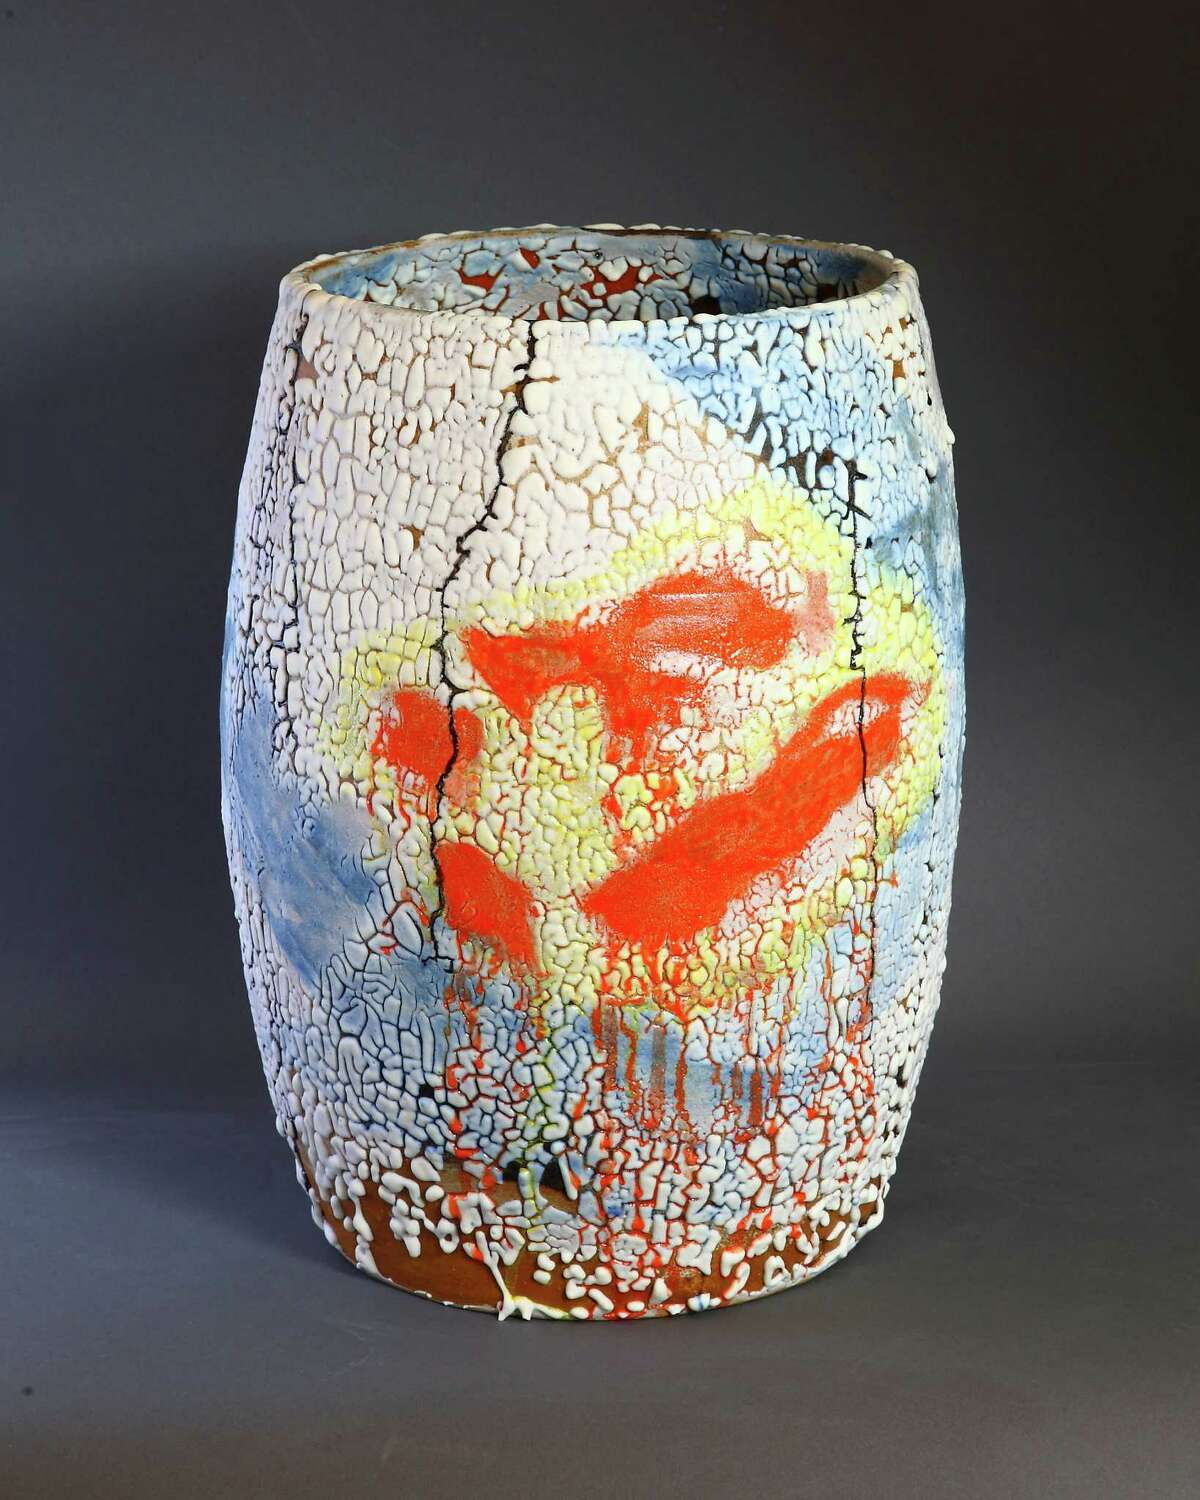 New works such as this piece by ceramic artist Phyllis Savage will be on display through Christmas Eve at her studio and gallery at 93 Mill Plain Road in Danbury.